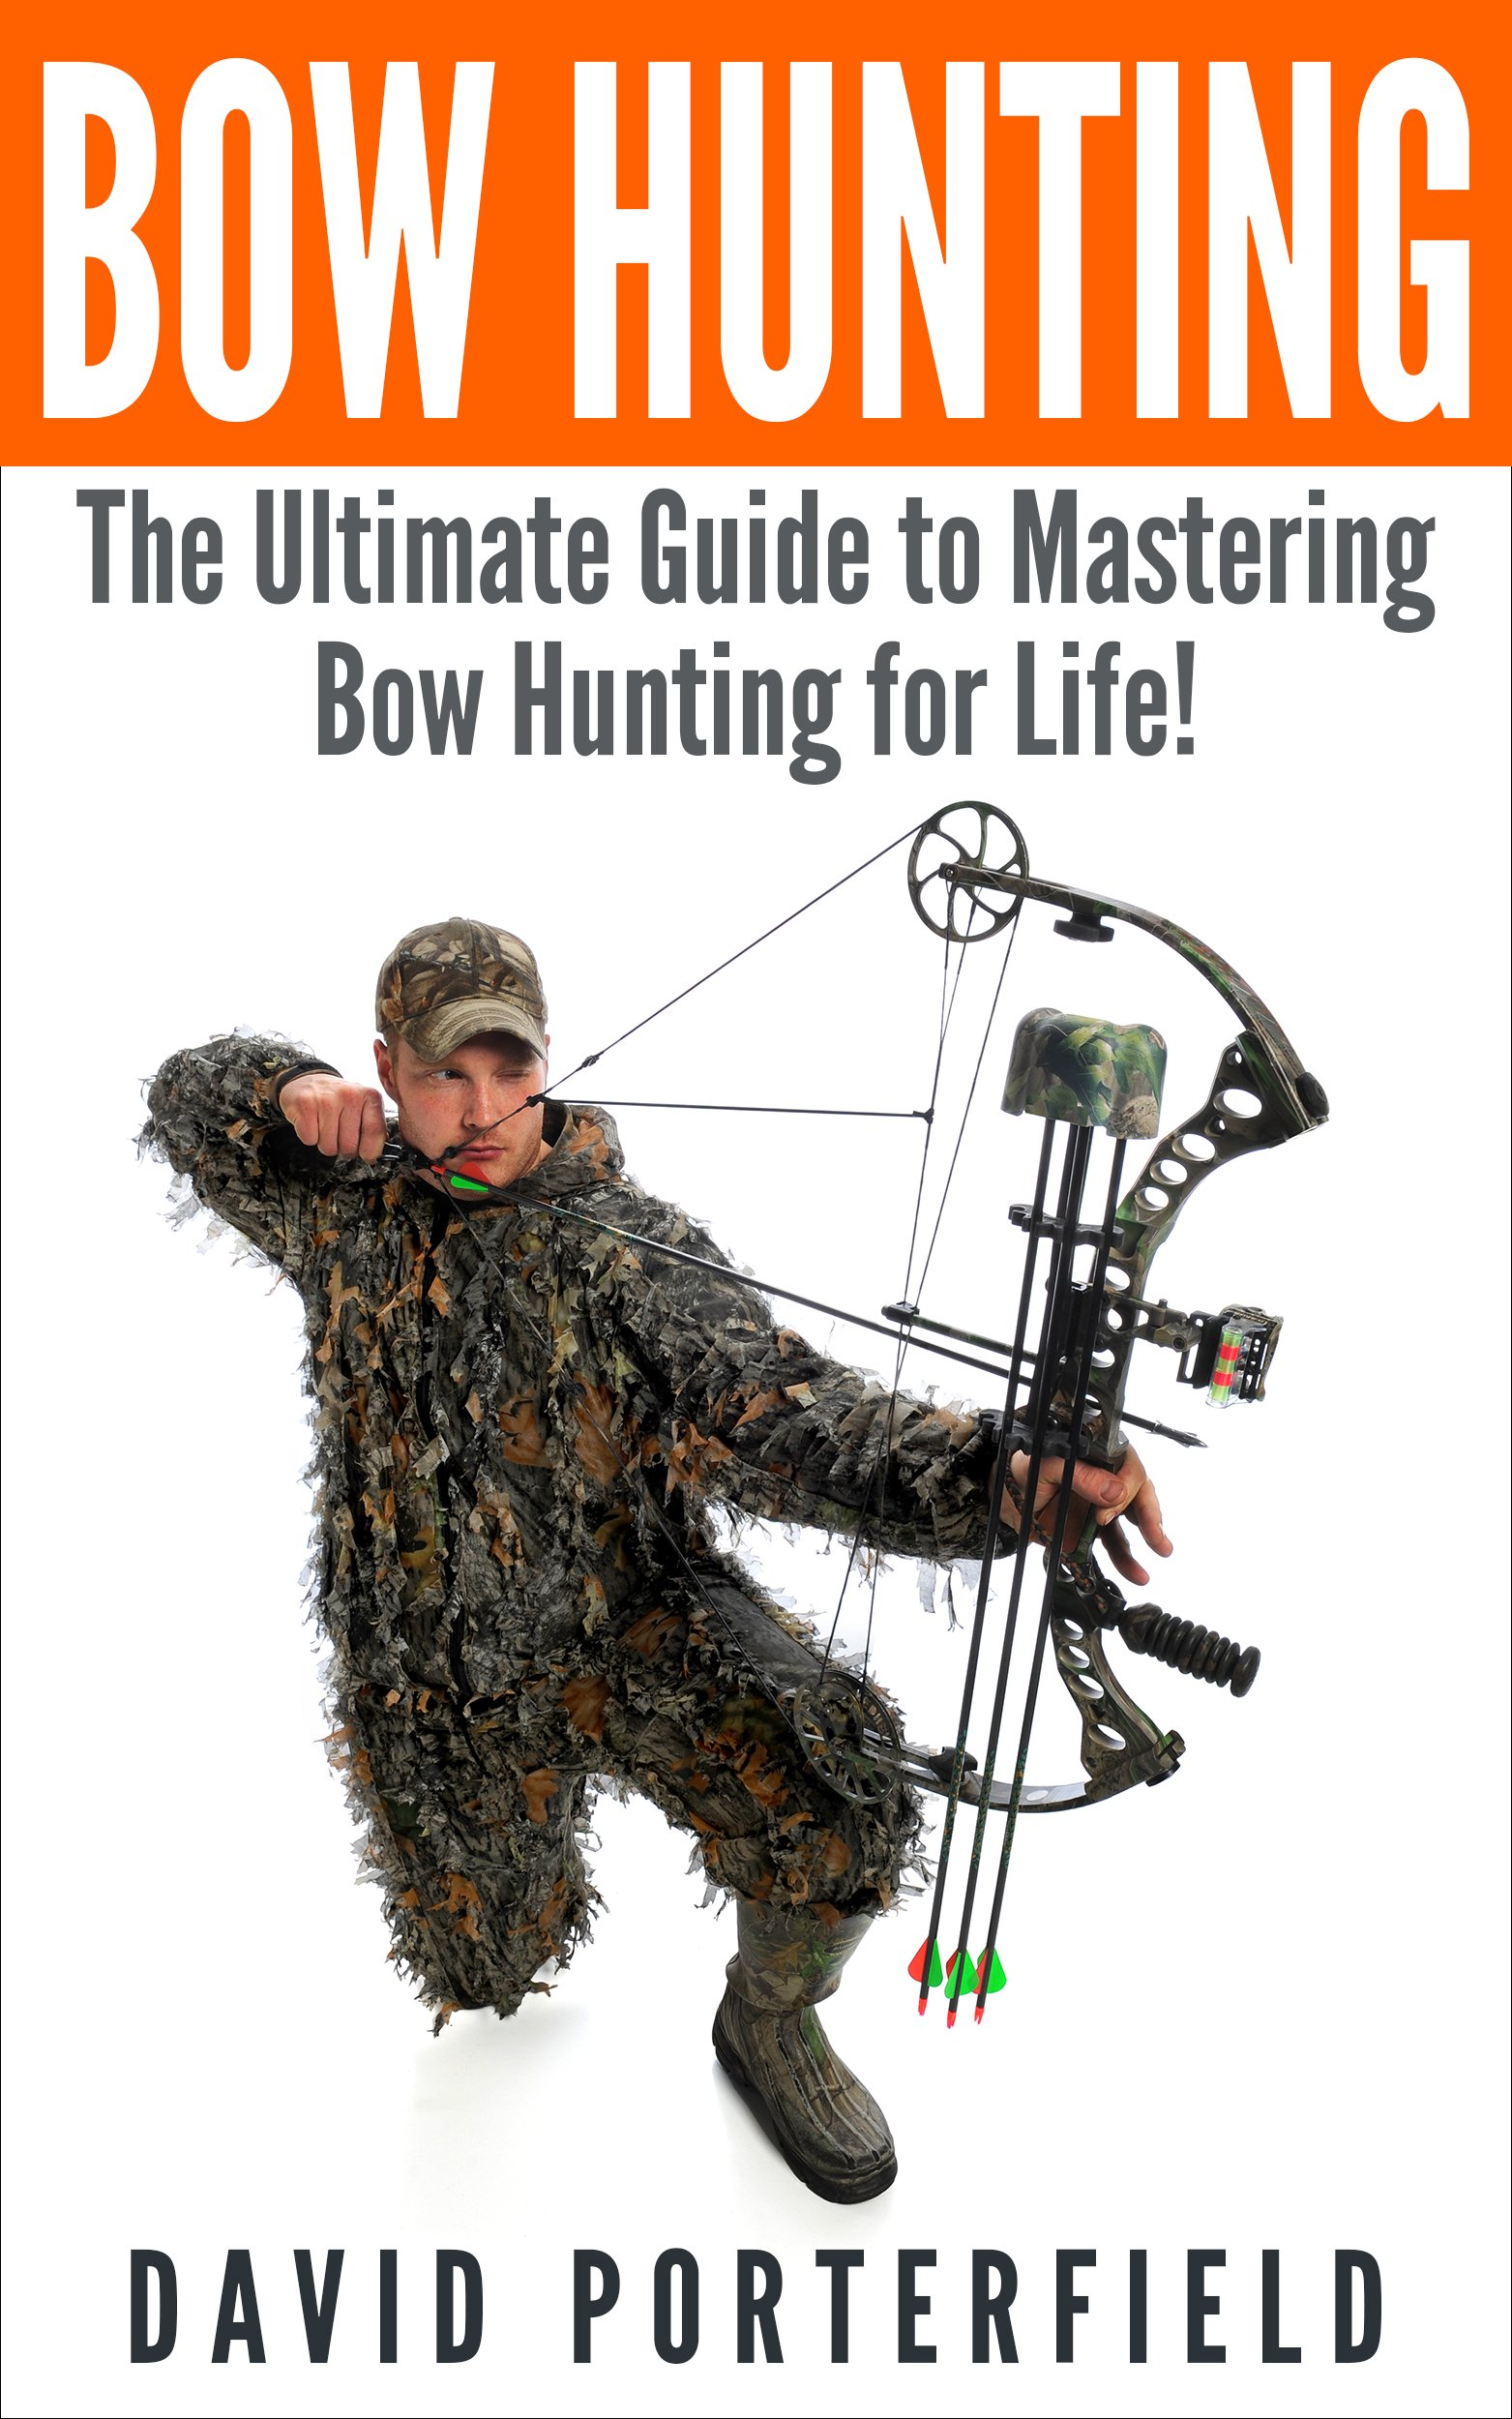 Bow Hunting: The Ultimate Guide to Mastering Bow hunting for Life! (deer hunting, bow hunter, bowhunting, bow hunting for beginners, archery, bow hunting tips, bow & arrow)